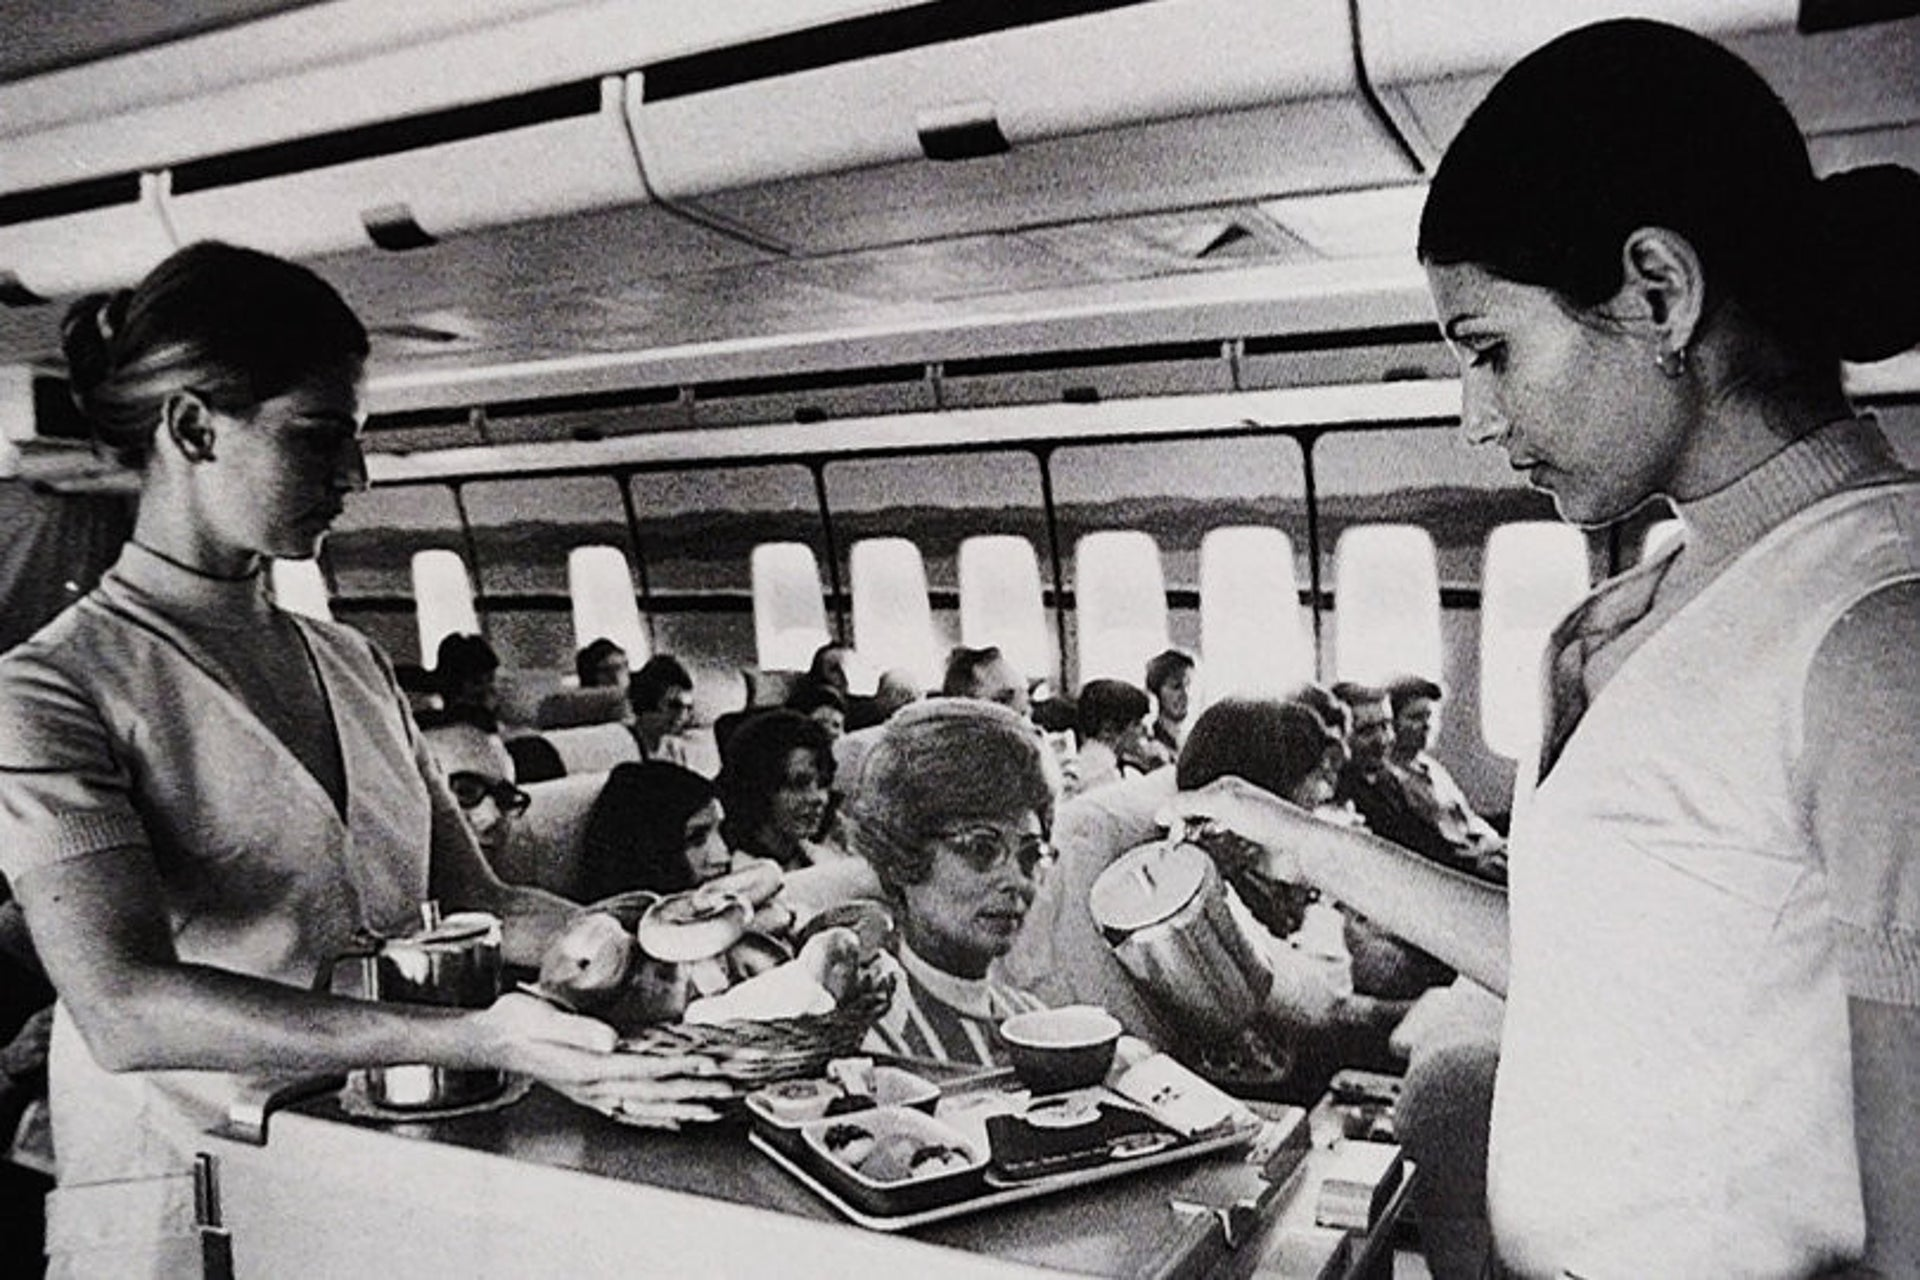 Food being served on an El Al 747 aircraft in the 1970s.